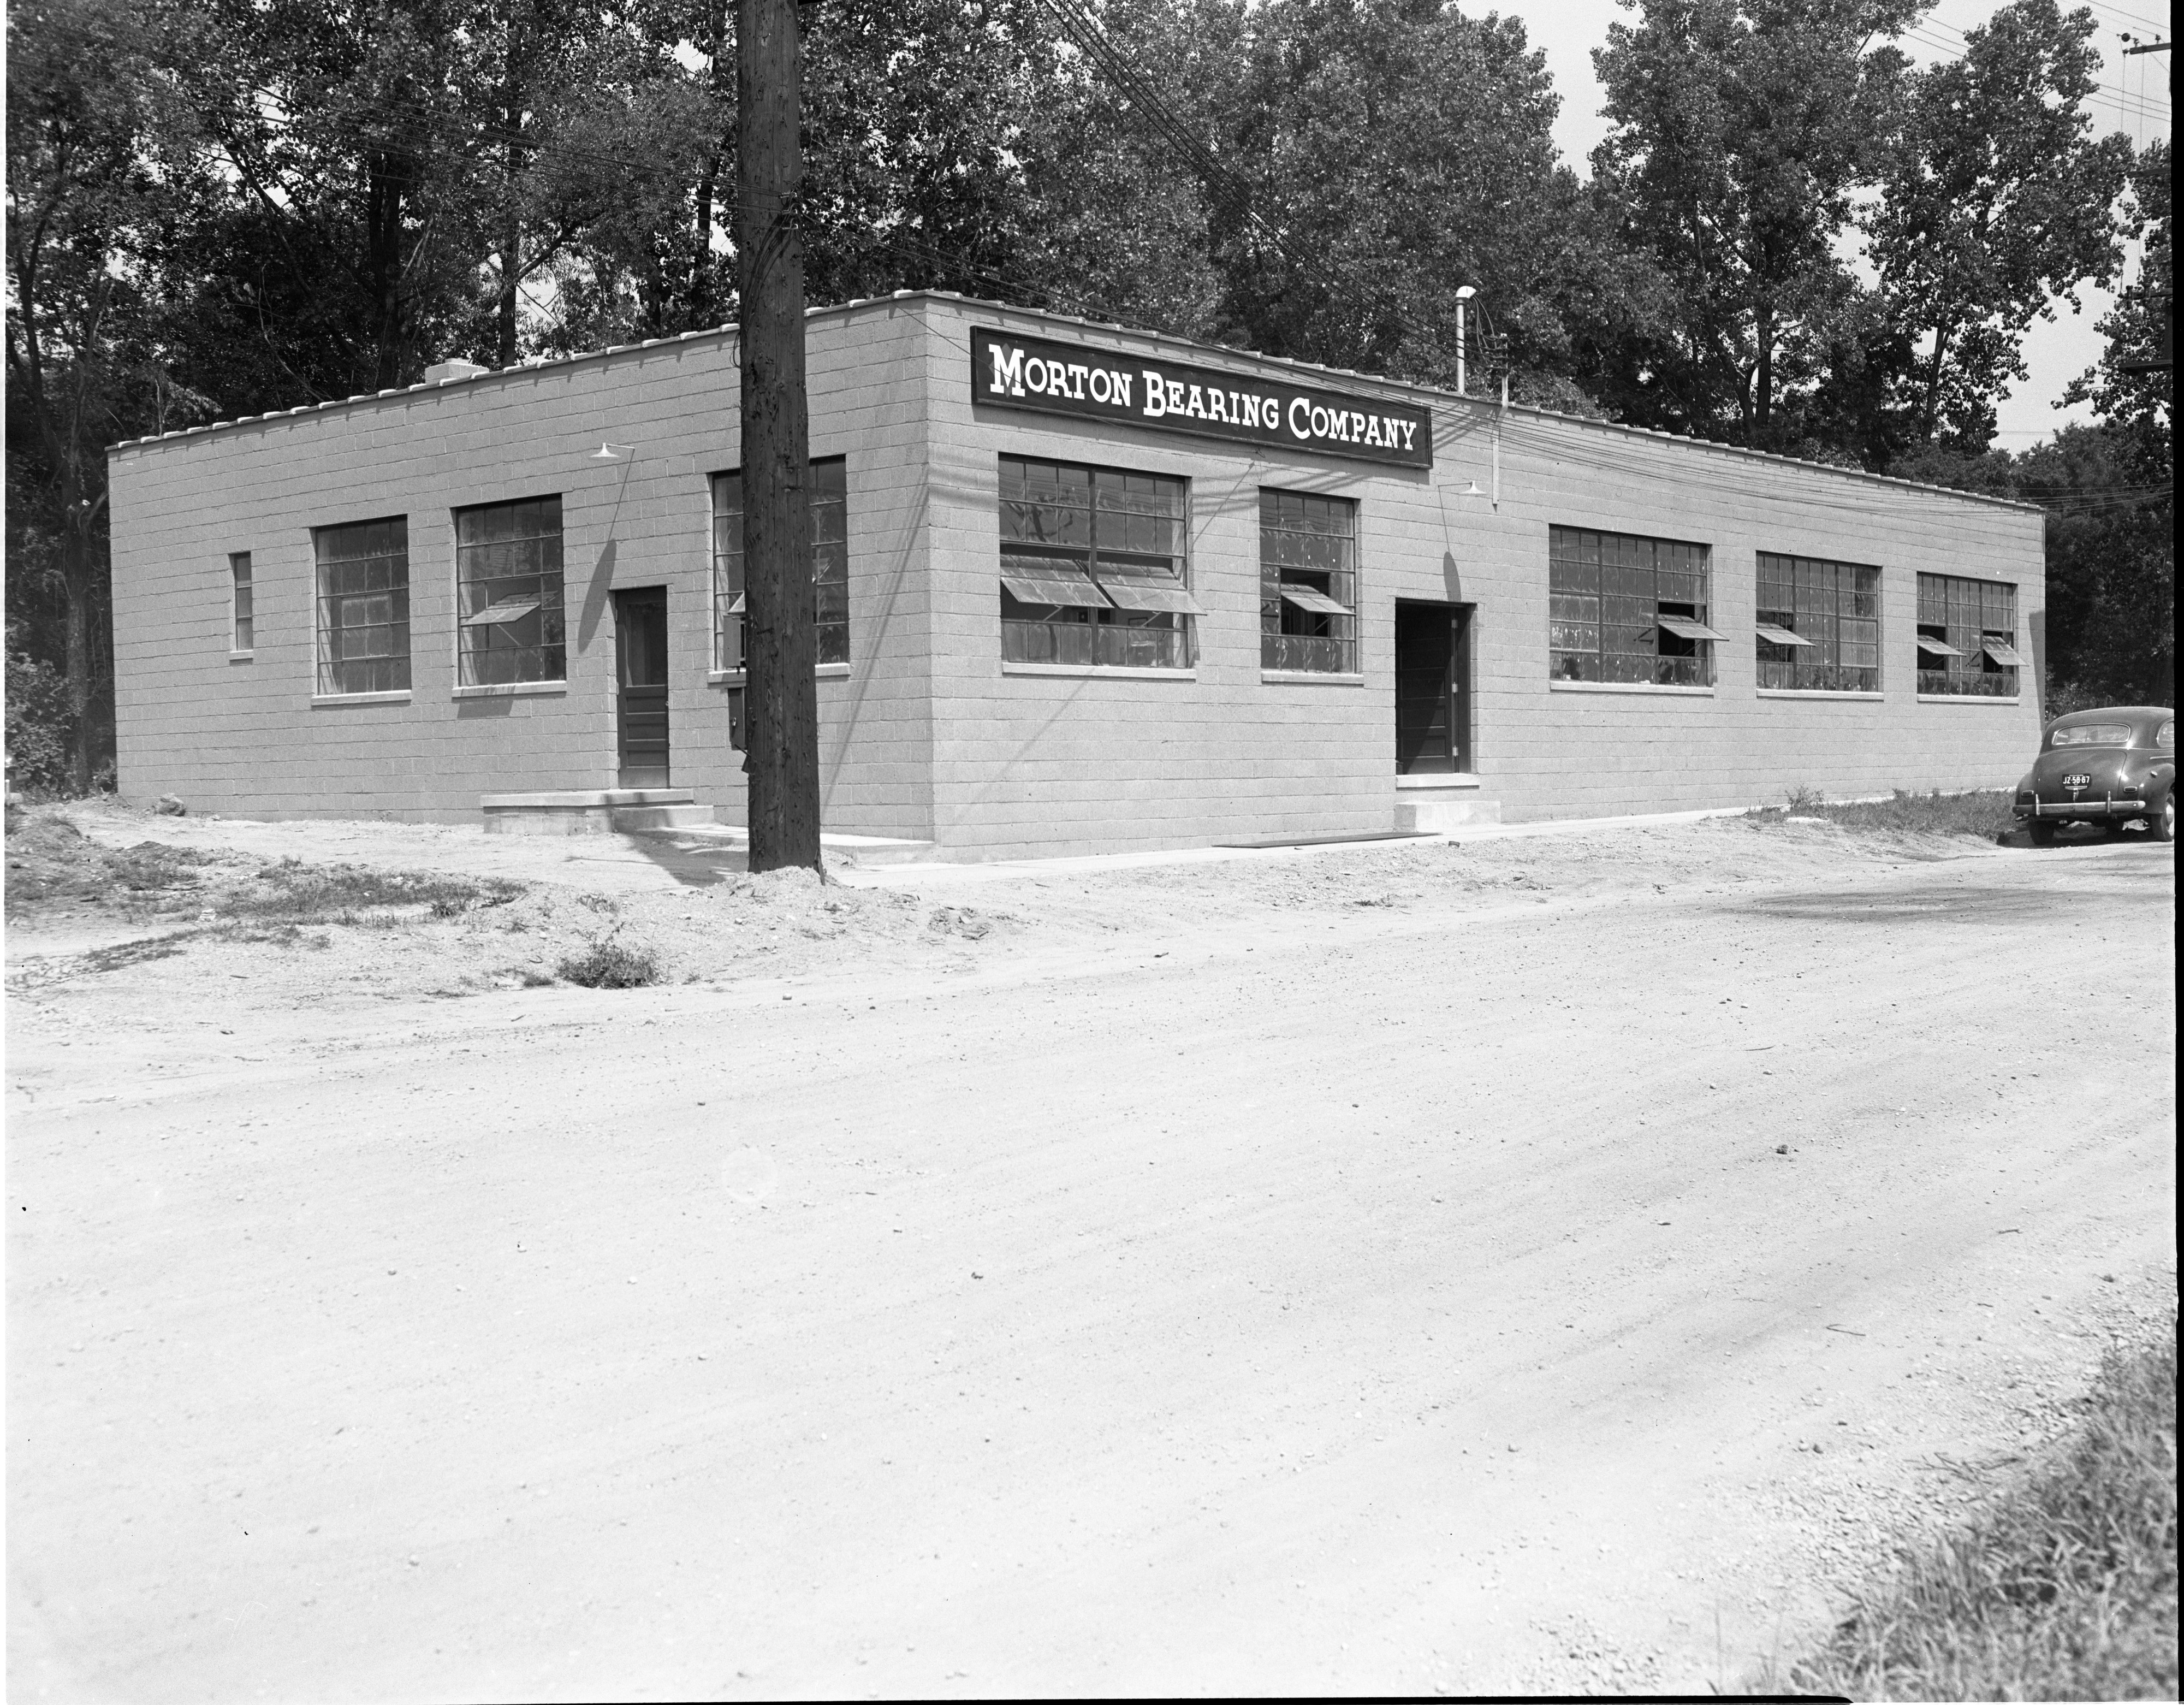 Morton Bearing Company's New Building - 815 Wildt Street, August 1953 image